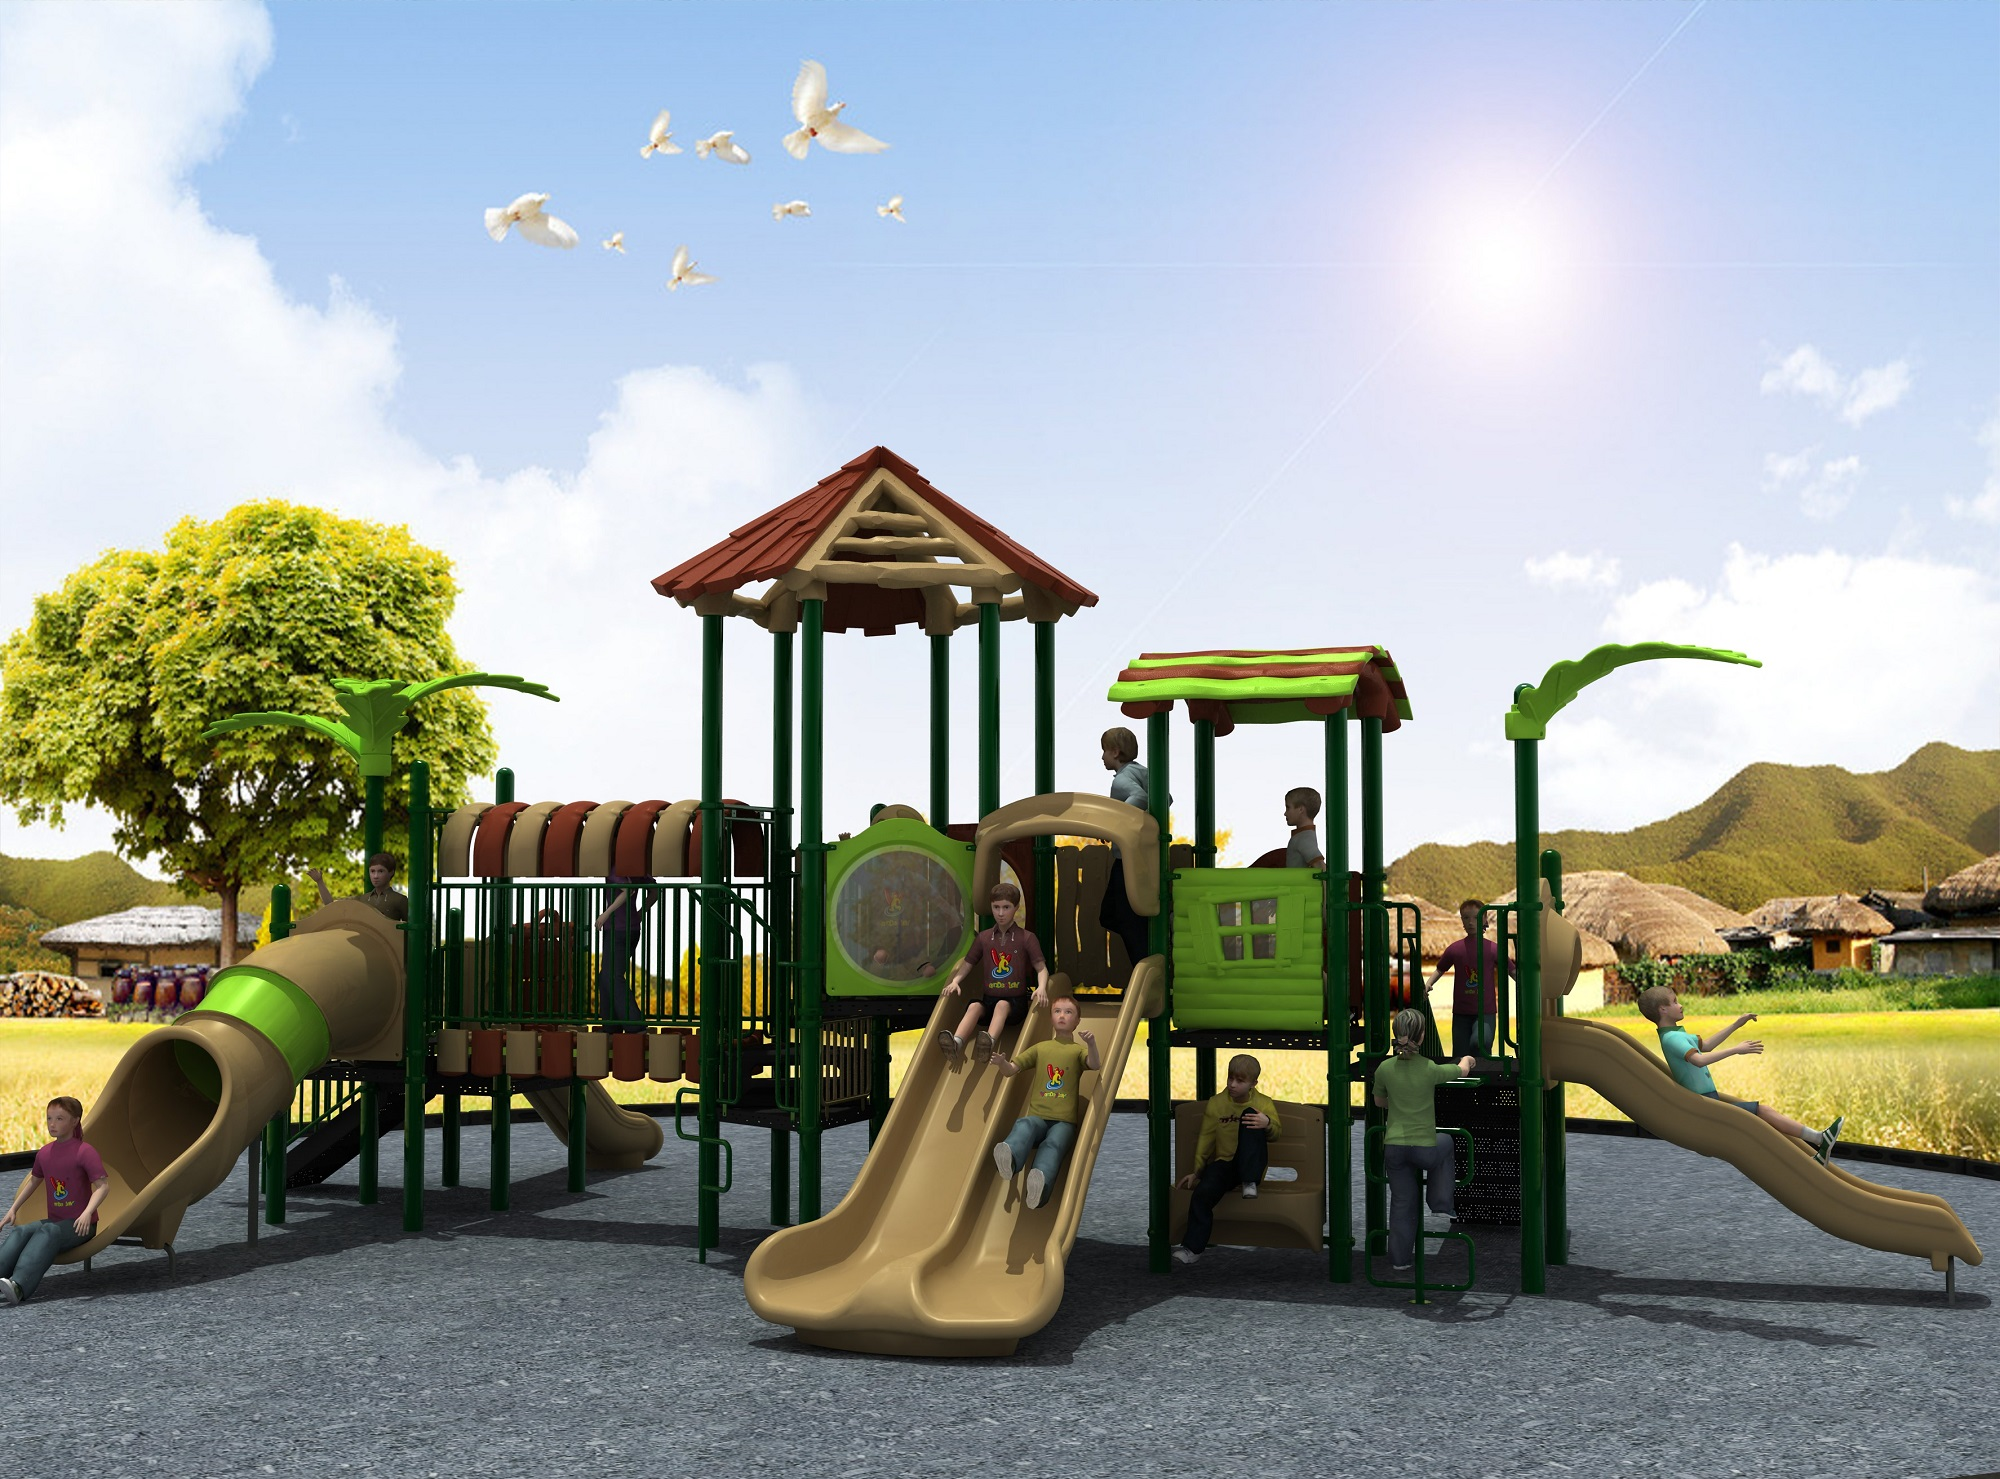 Hot Selling Playground Equipment Outdoor Combined Slide Forest Series TUV006